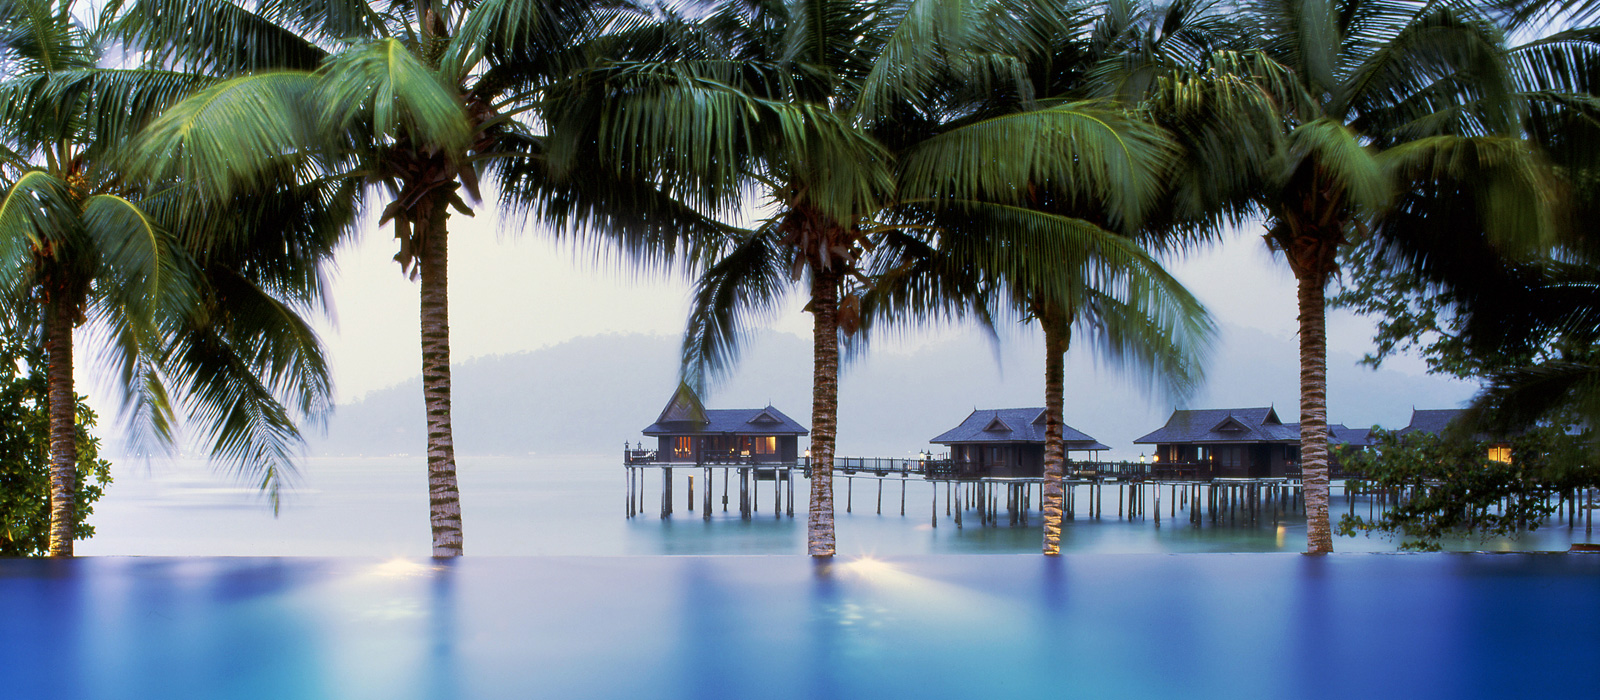 Pangkor Laut Resort | Book this Luxury Beach Resort in Malaysia